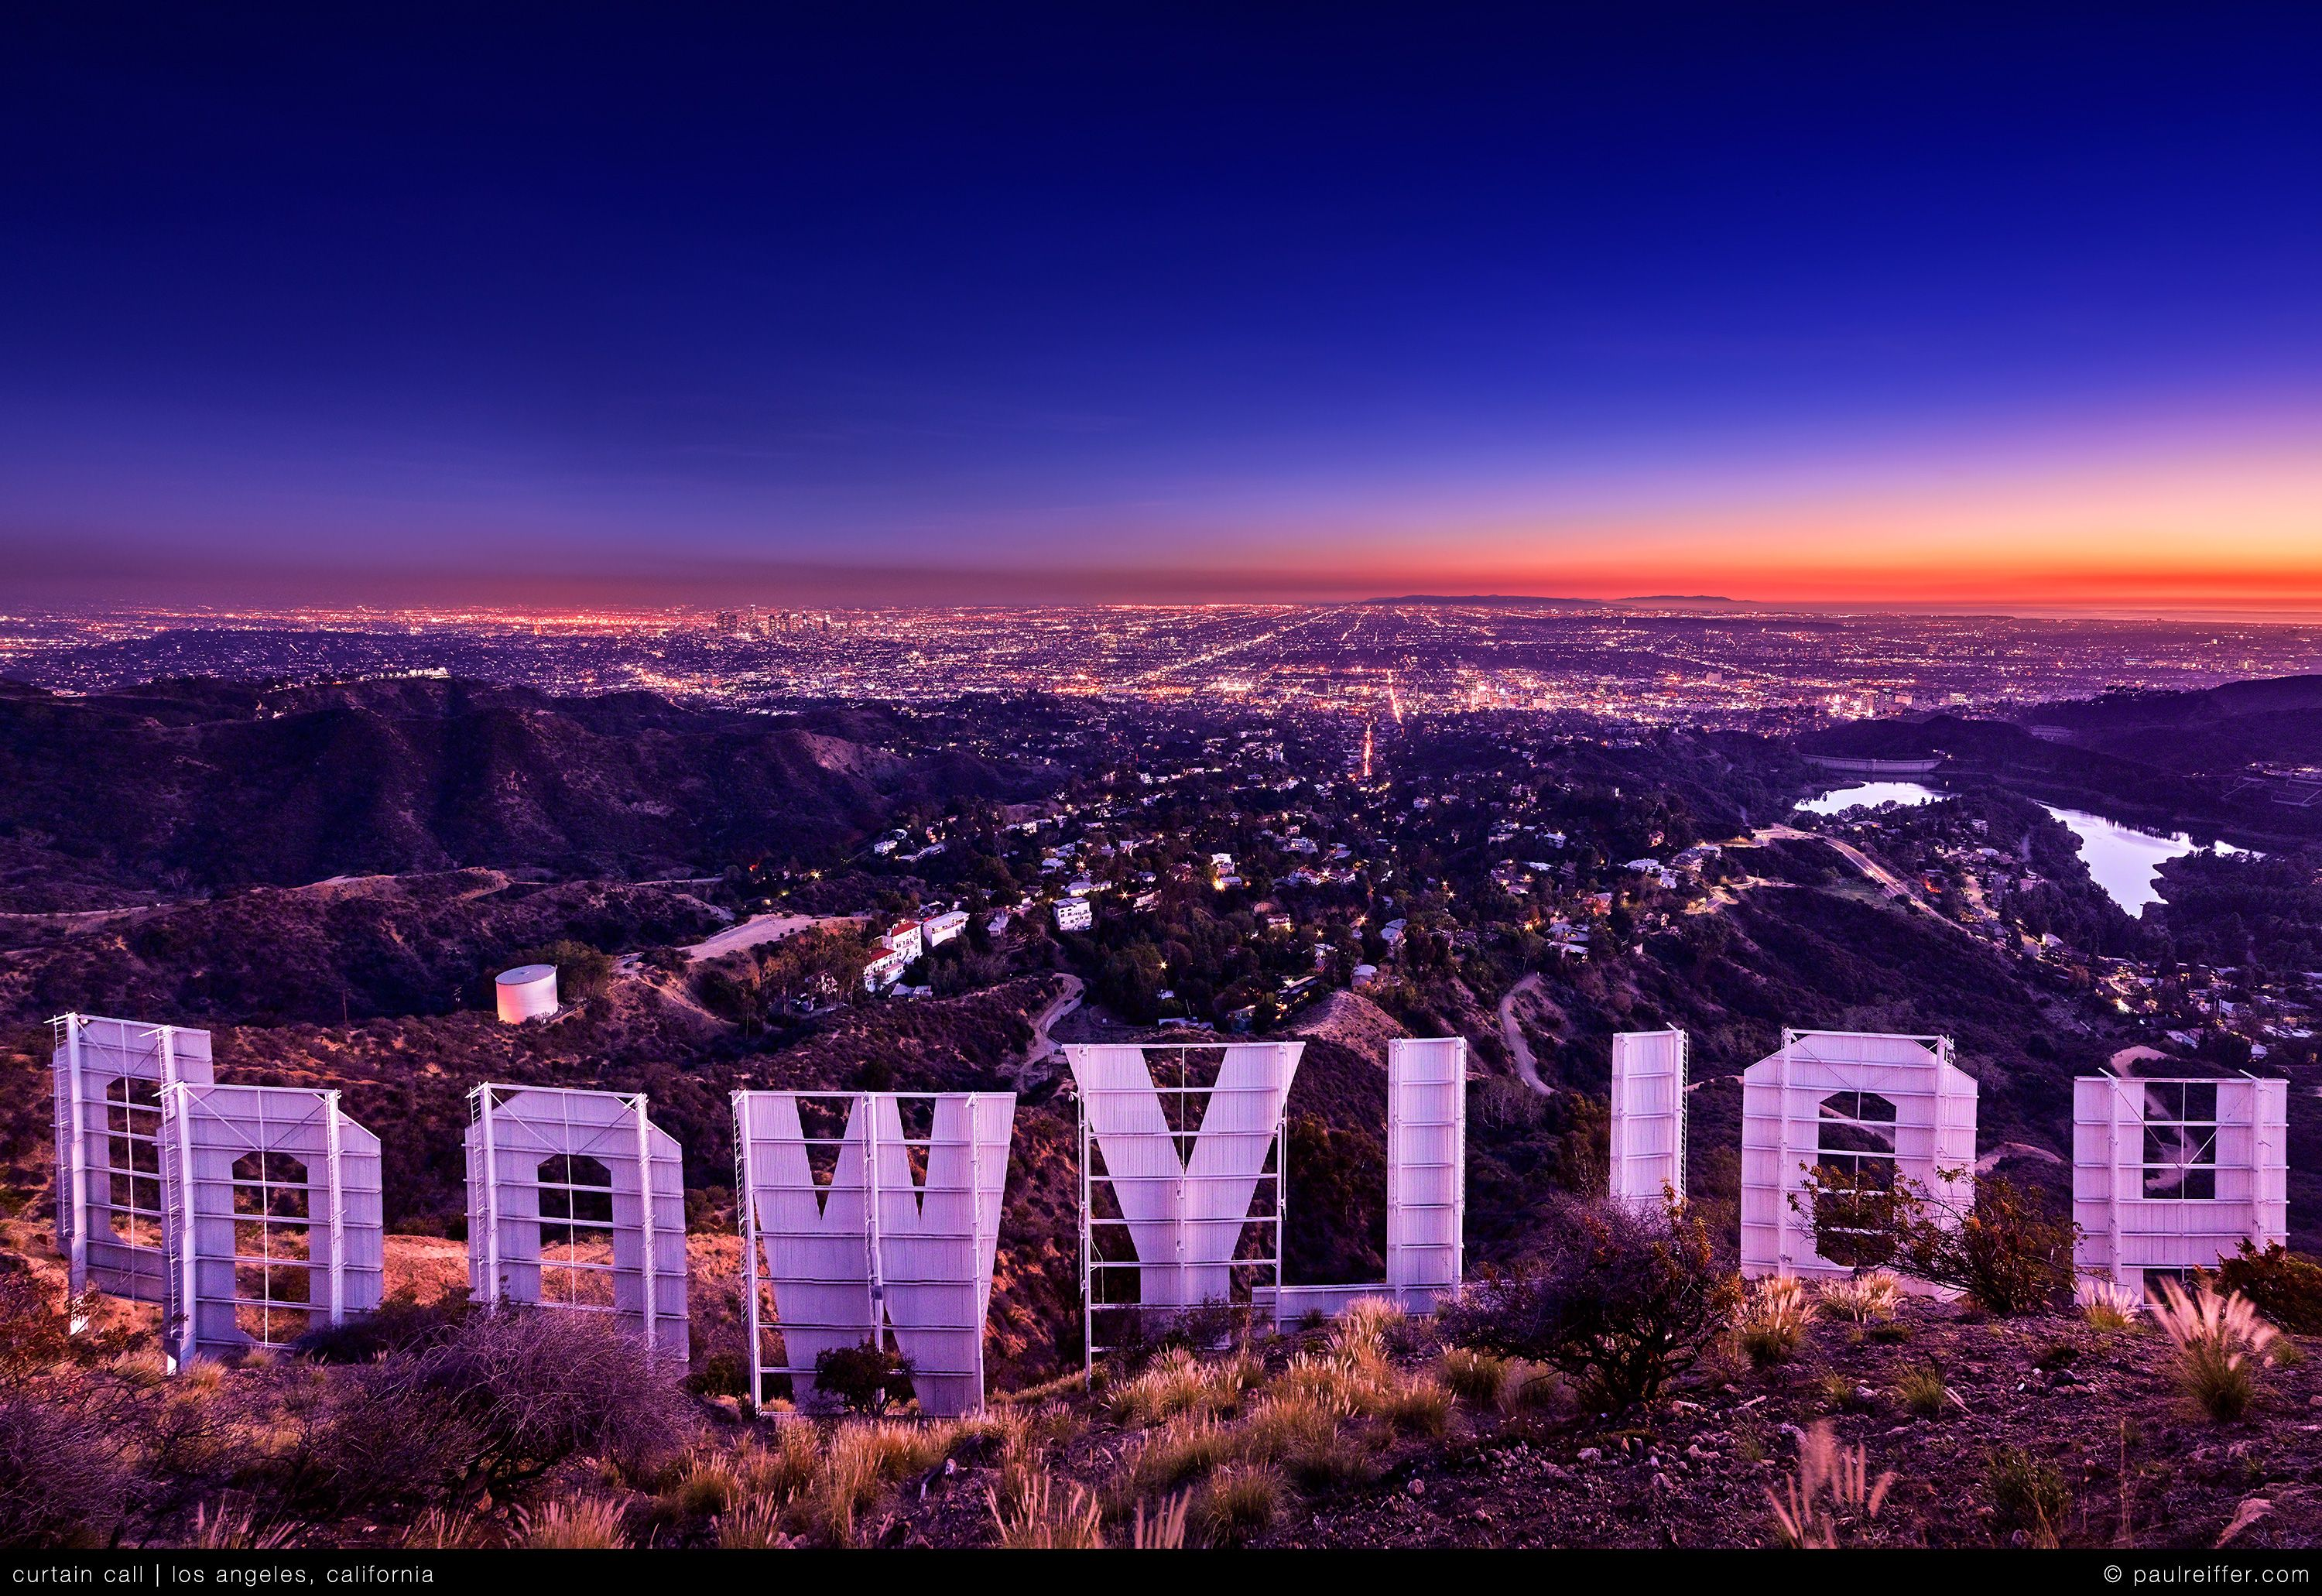 hollywood sign sunset pic by paulreiffer california. Black Bedroom Furniture Sets. Home Design Ideas